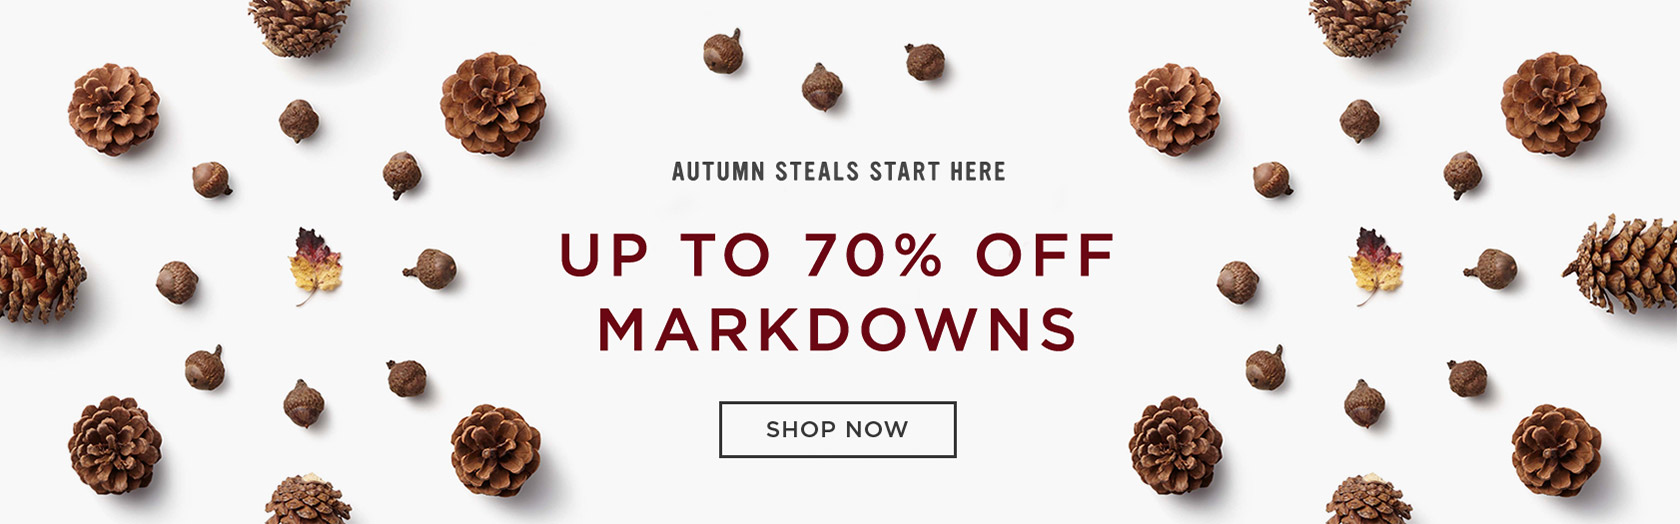 Up To 70% Off Markdowns